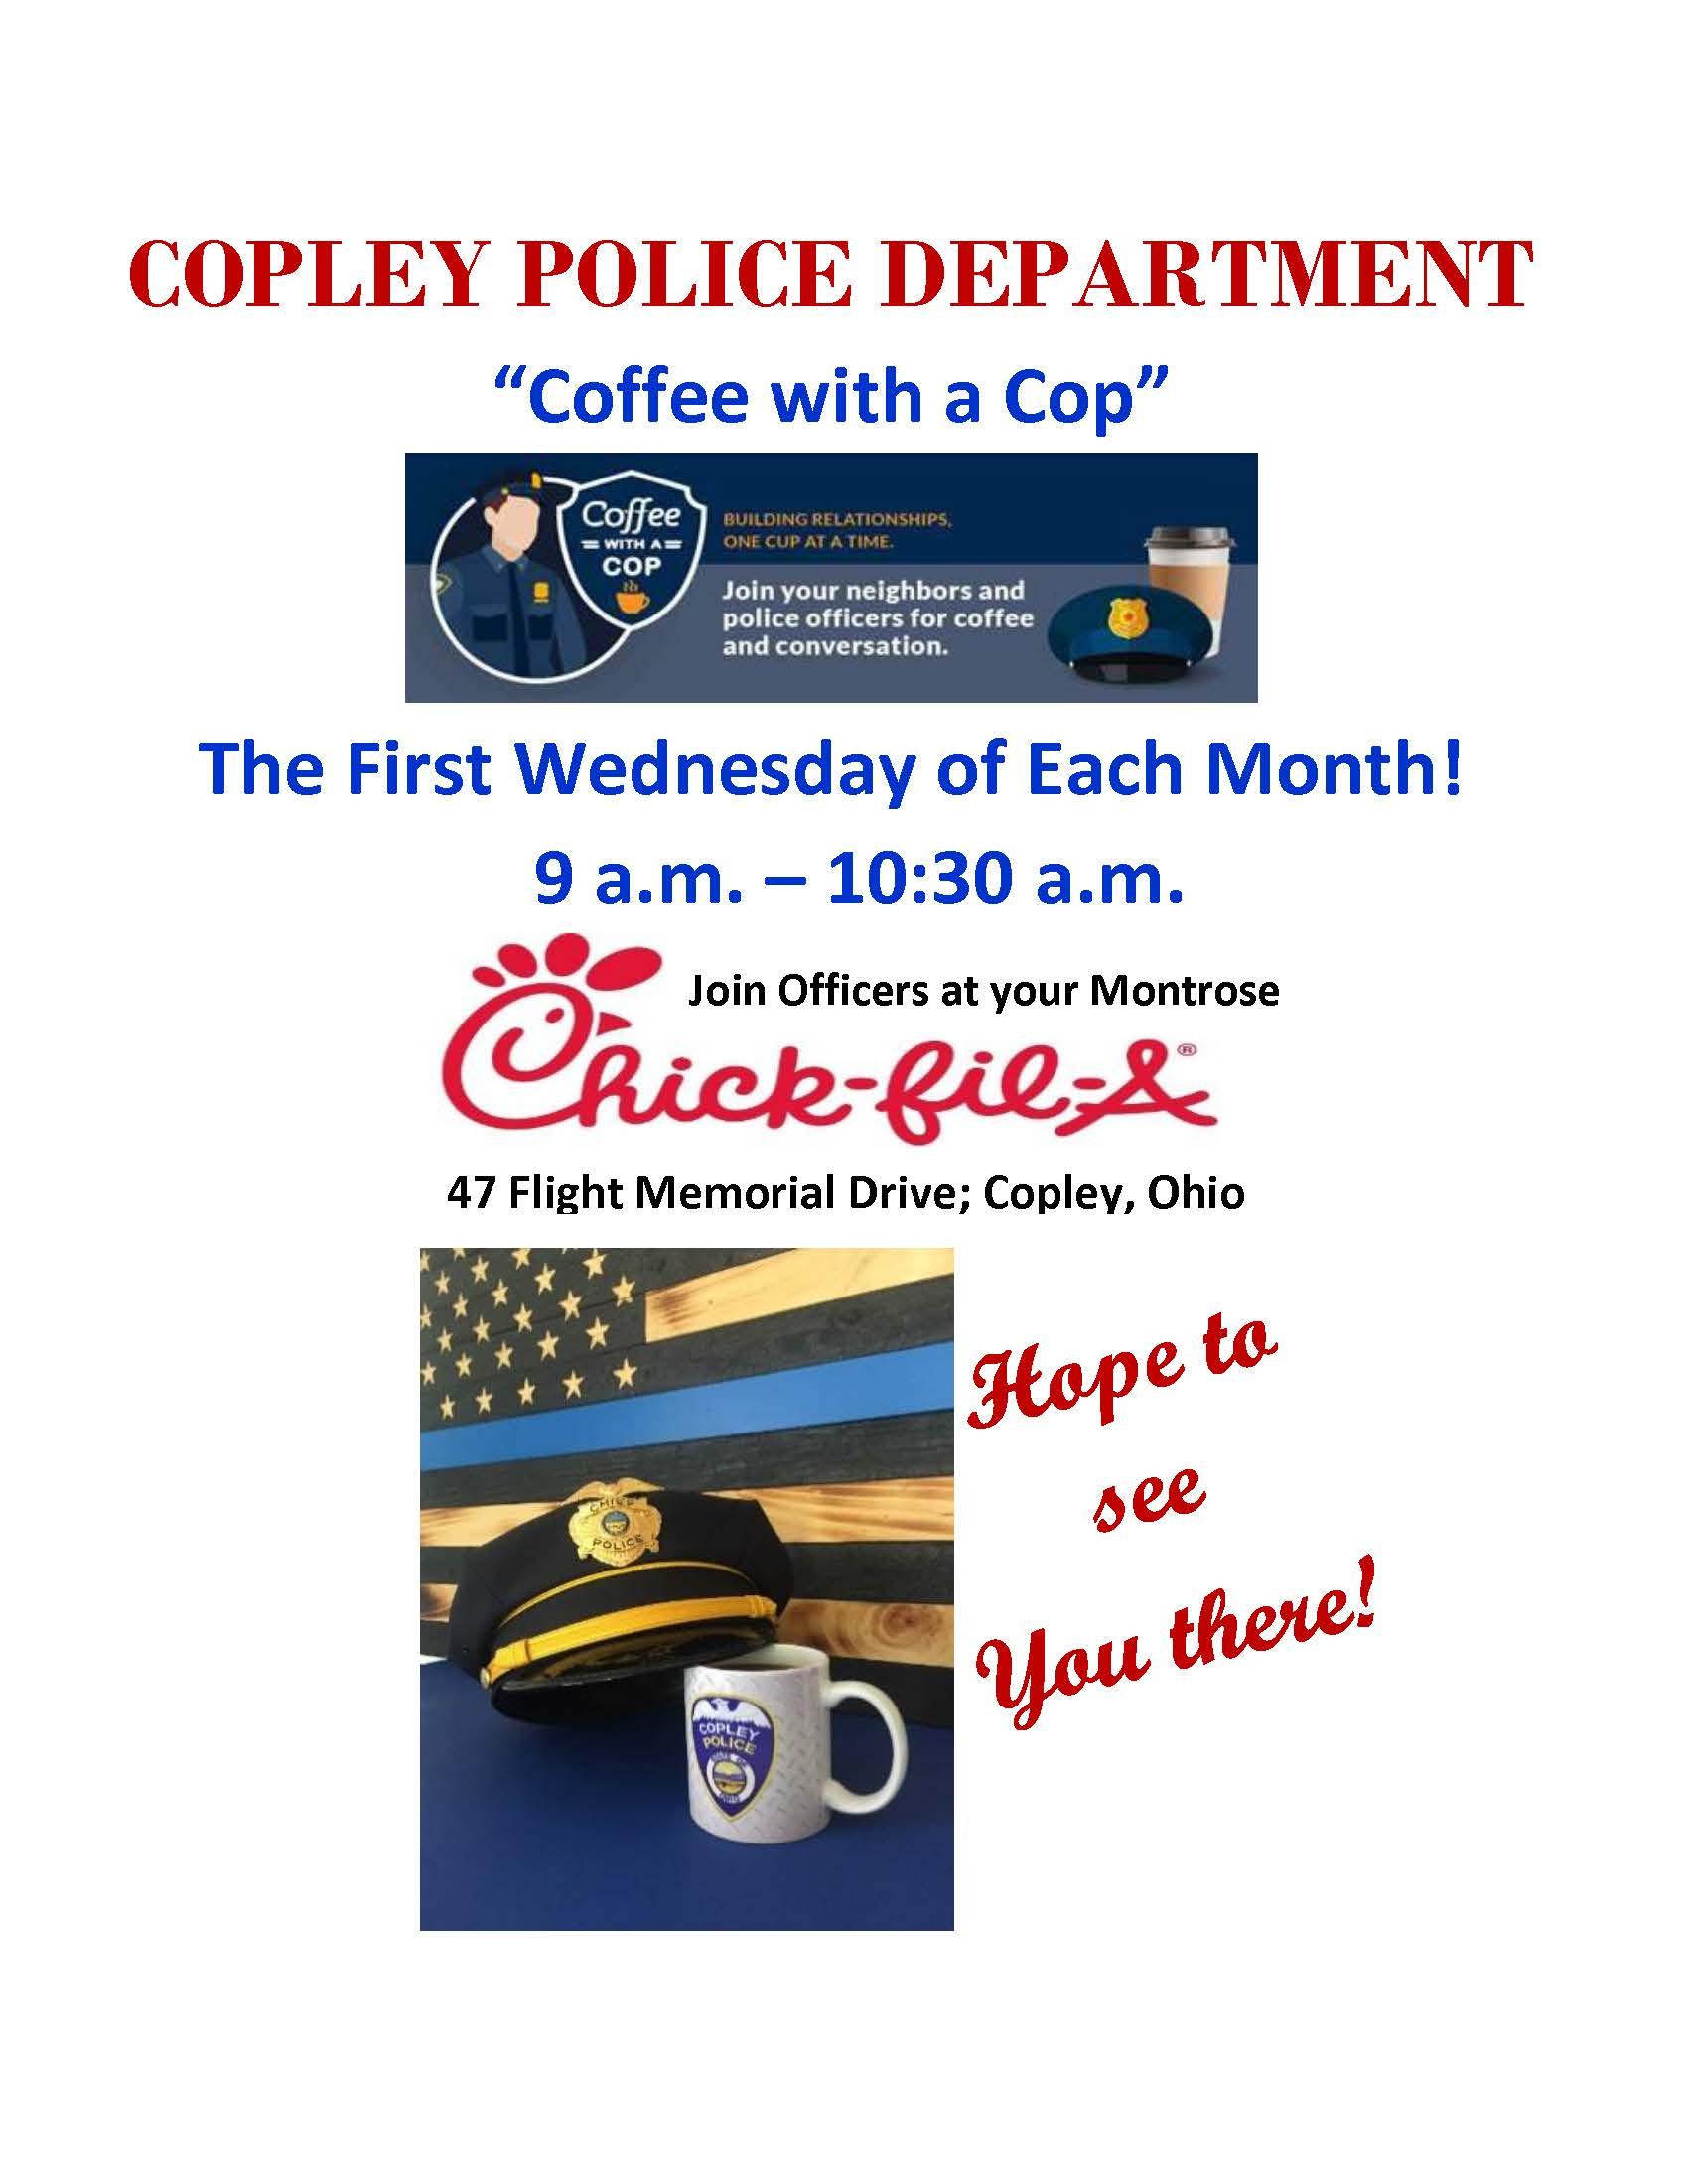 COFFEE WITH A COP FLIER - first of each month